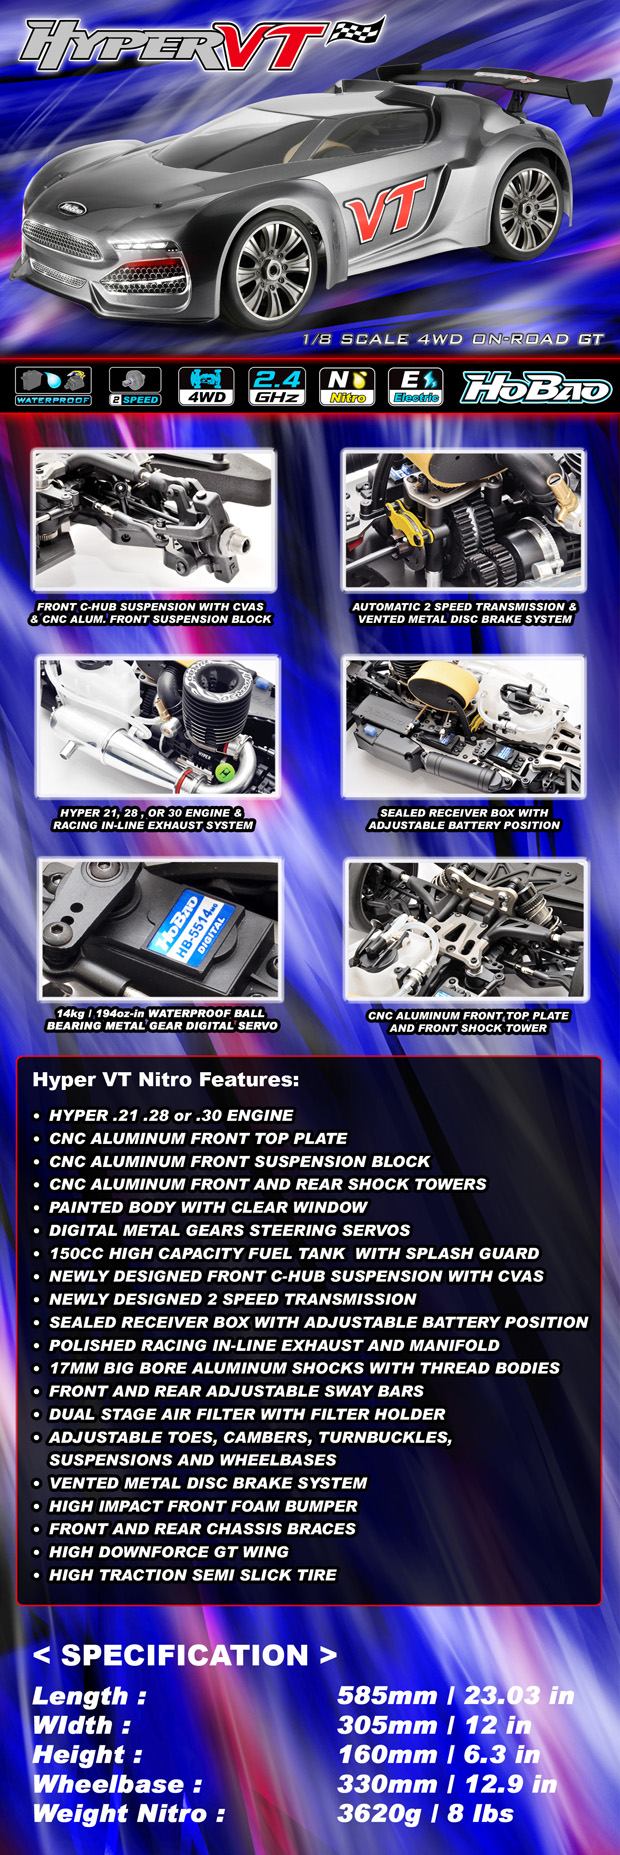 hobao-hyper-vt-description.jpg